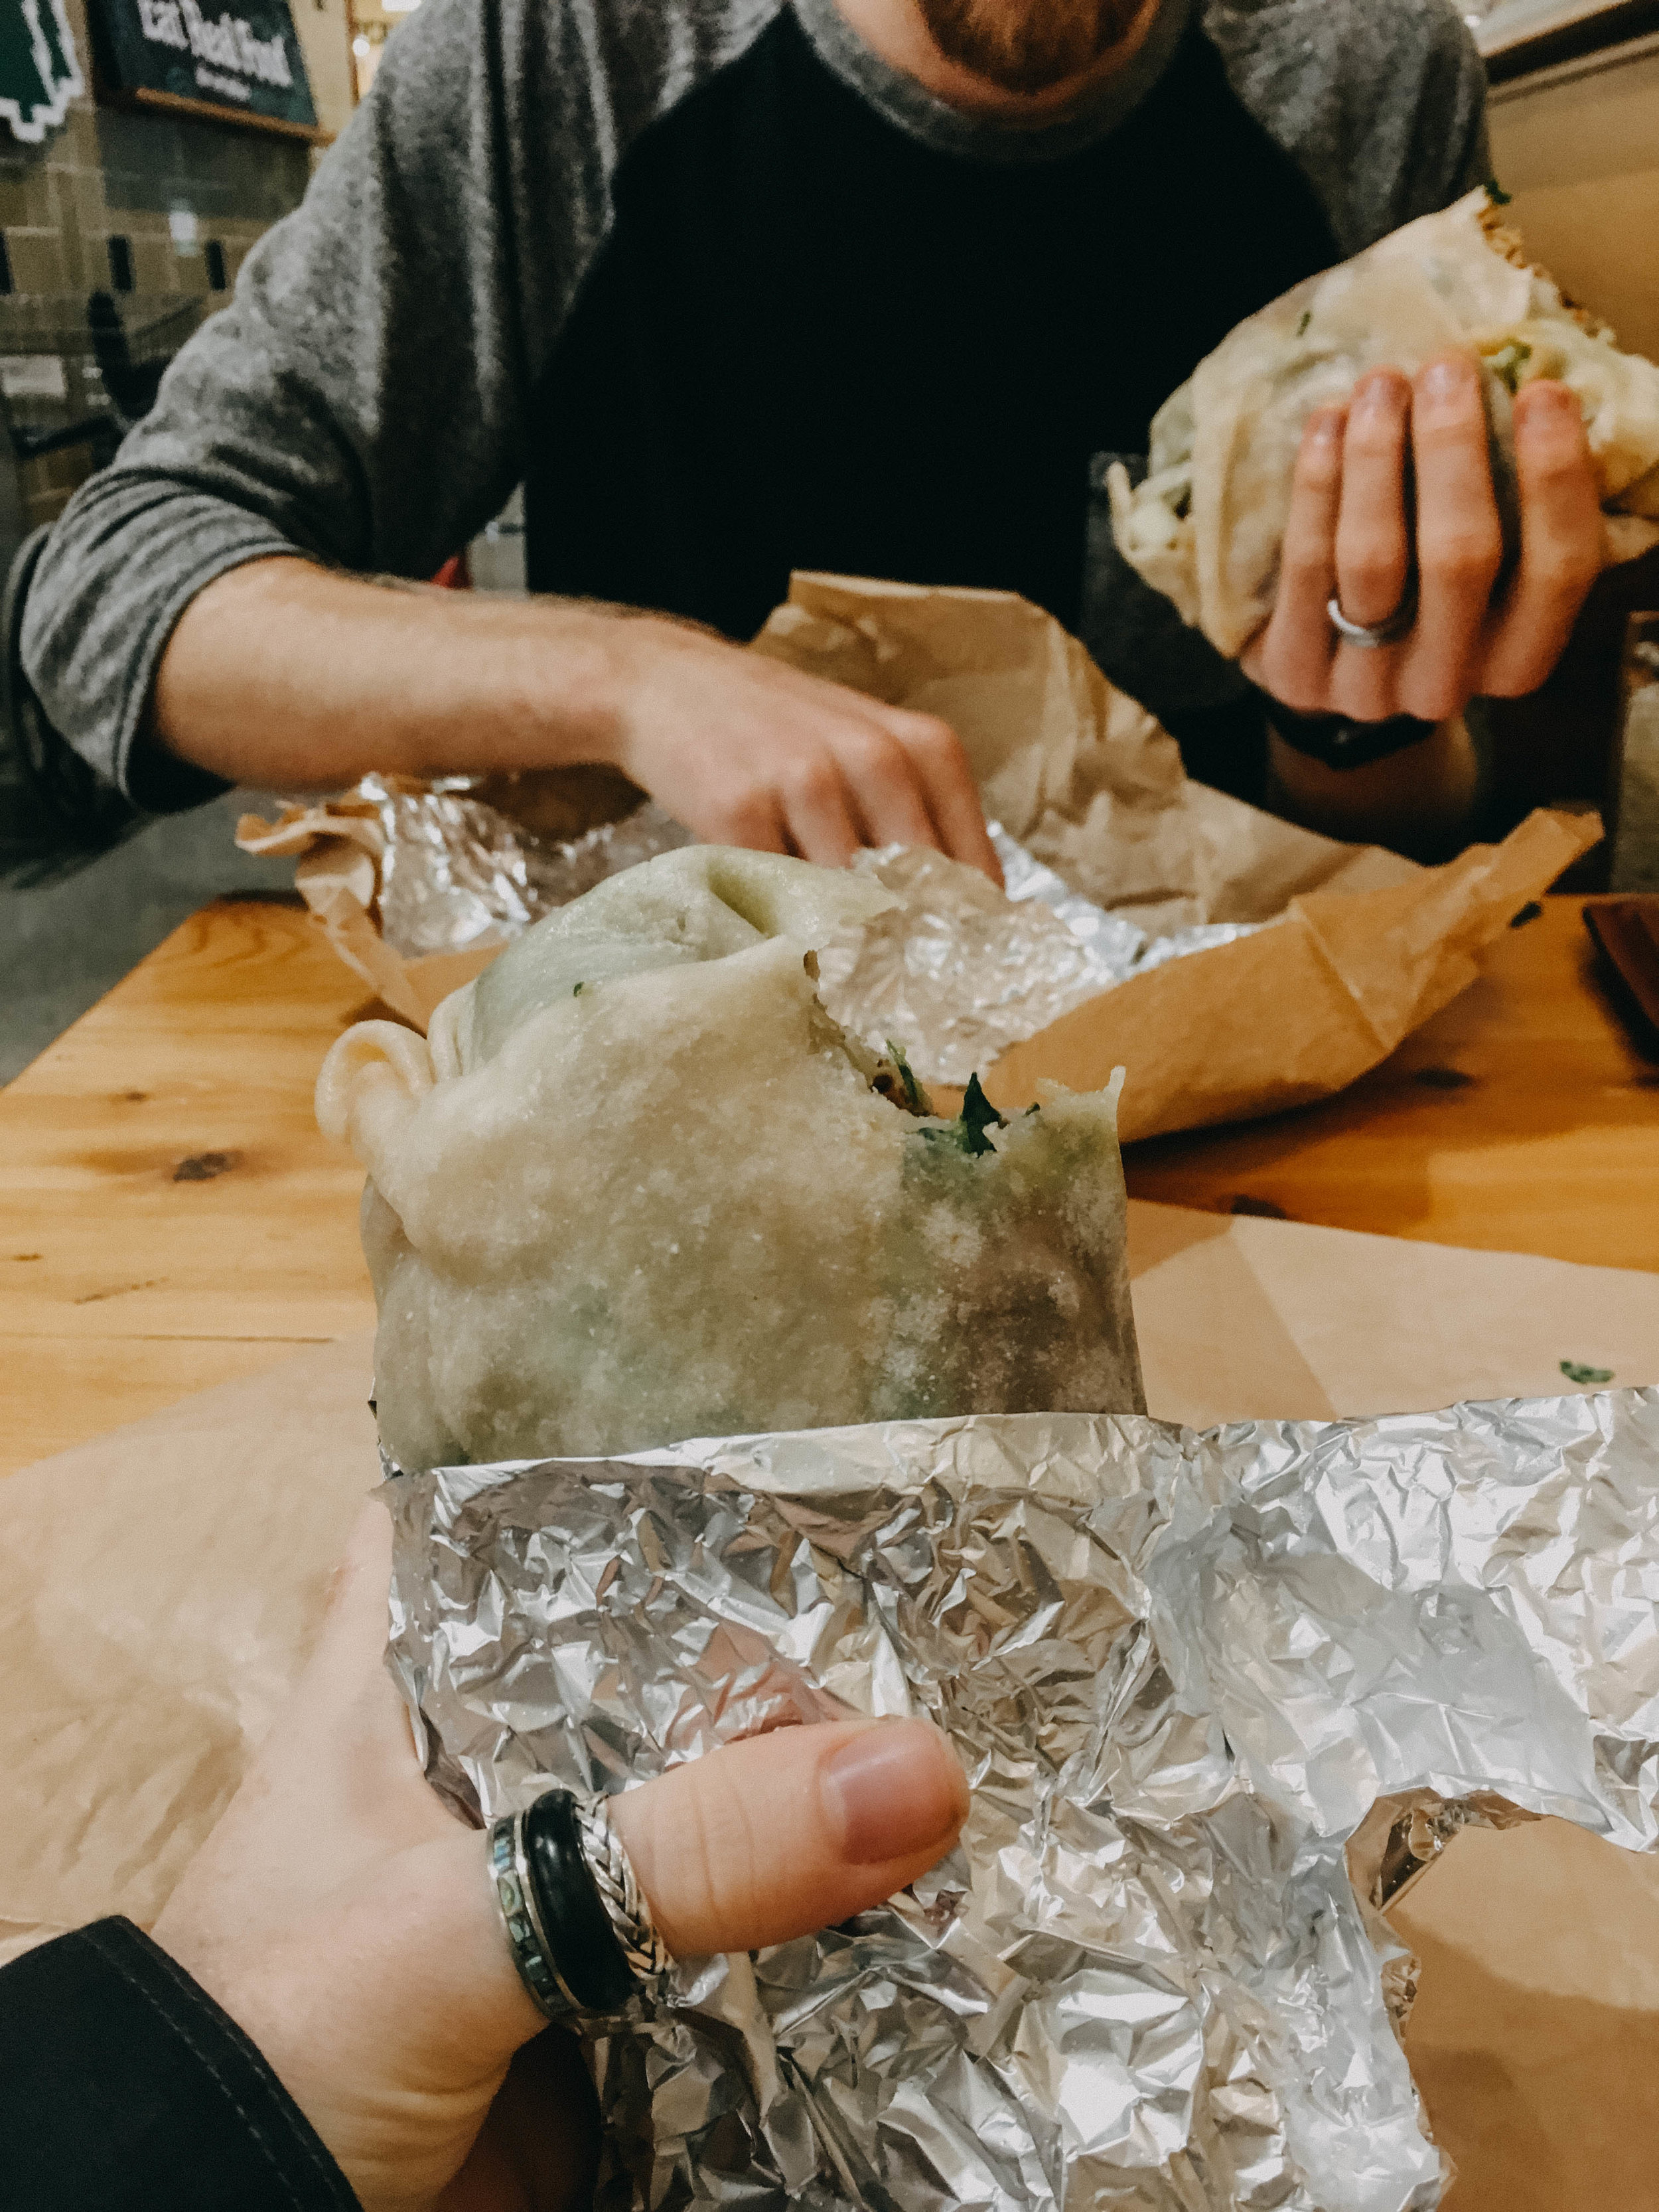 The Whole Foods in Portland is amazing! On my diet I can't have grains, so burritos are normally a no-no for me, but they had cassava tortillas at their taqueria! We went there for lunch a lot! Even when we drove back through we stopped. #dedicated